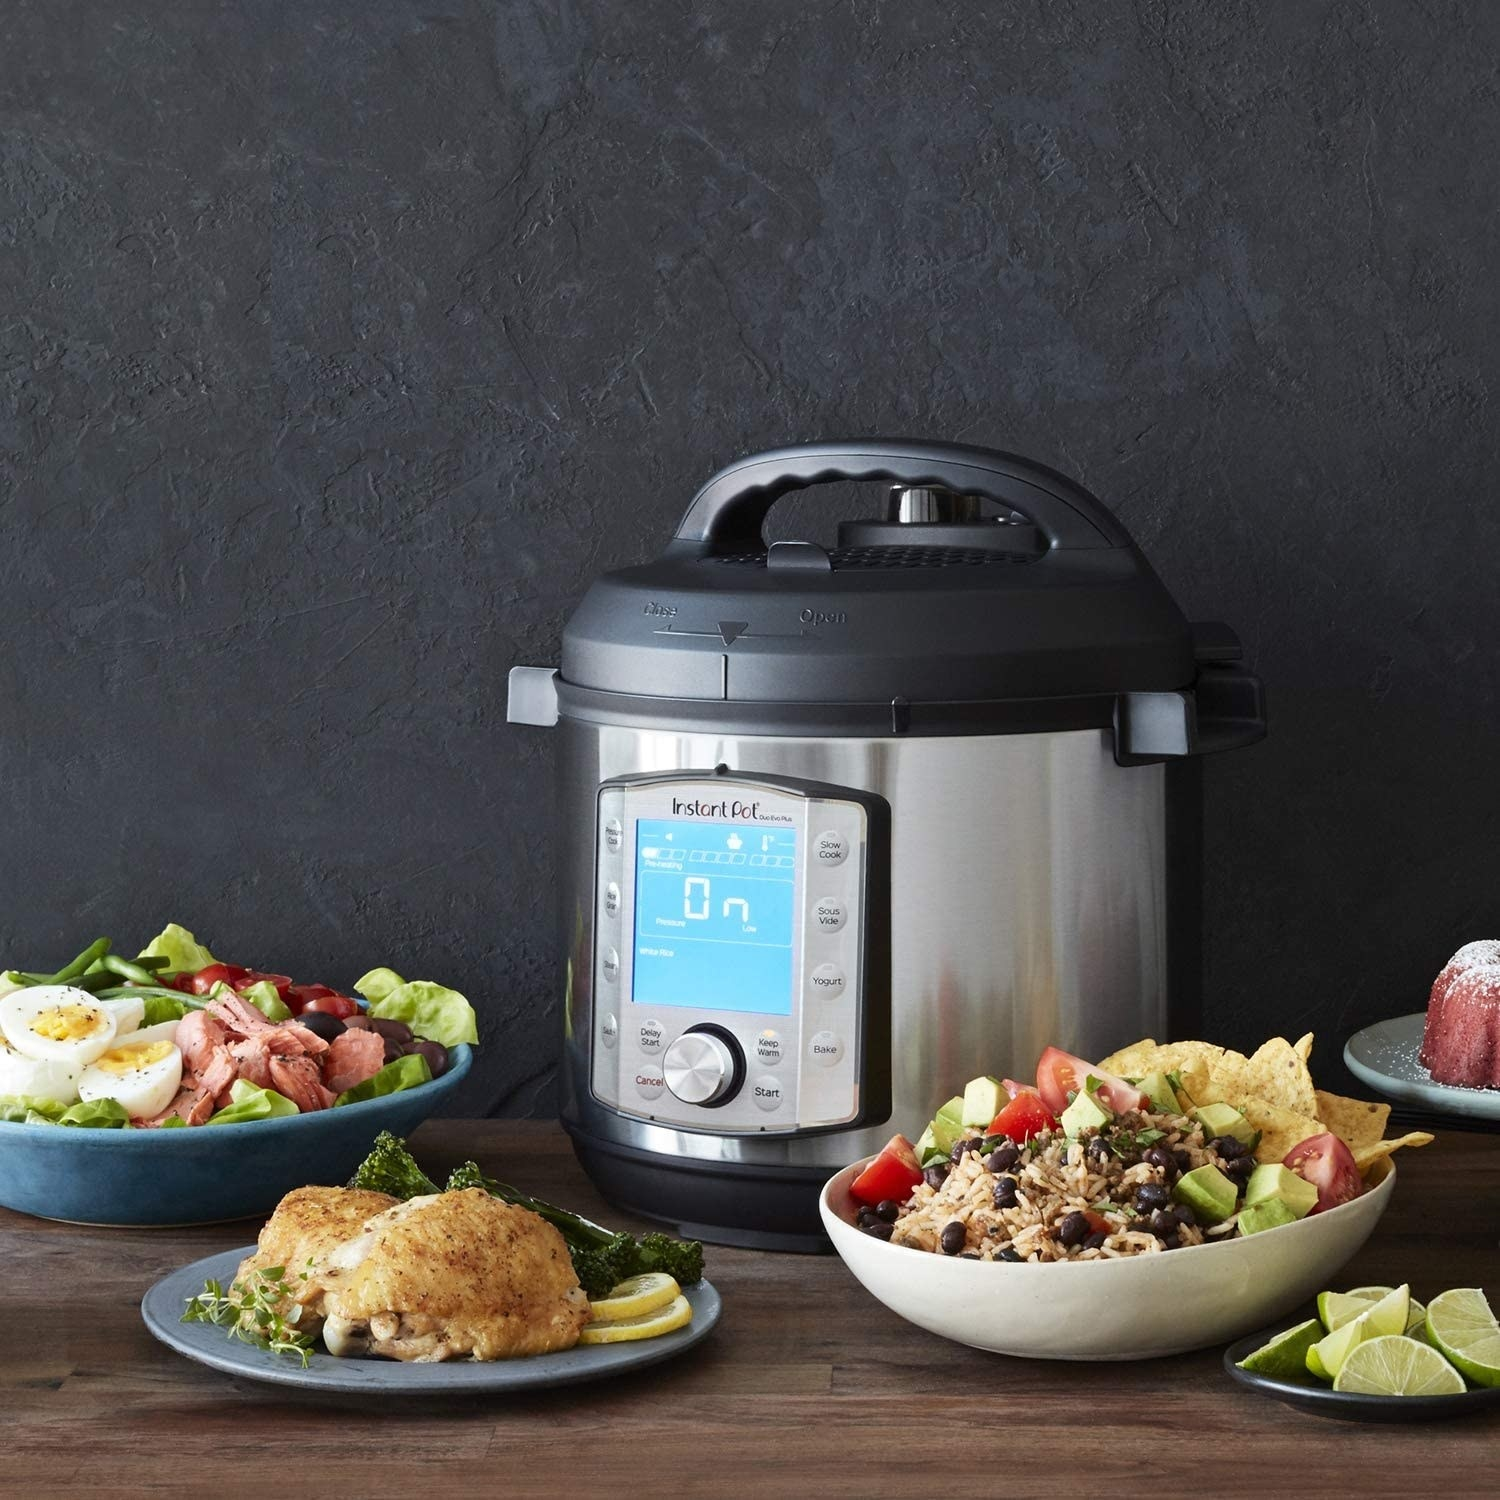 A stainless steel instant pot with a digital display surrounded by several dishes on a counter